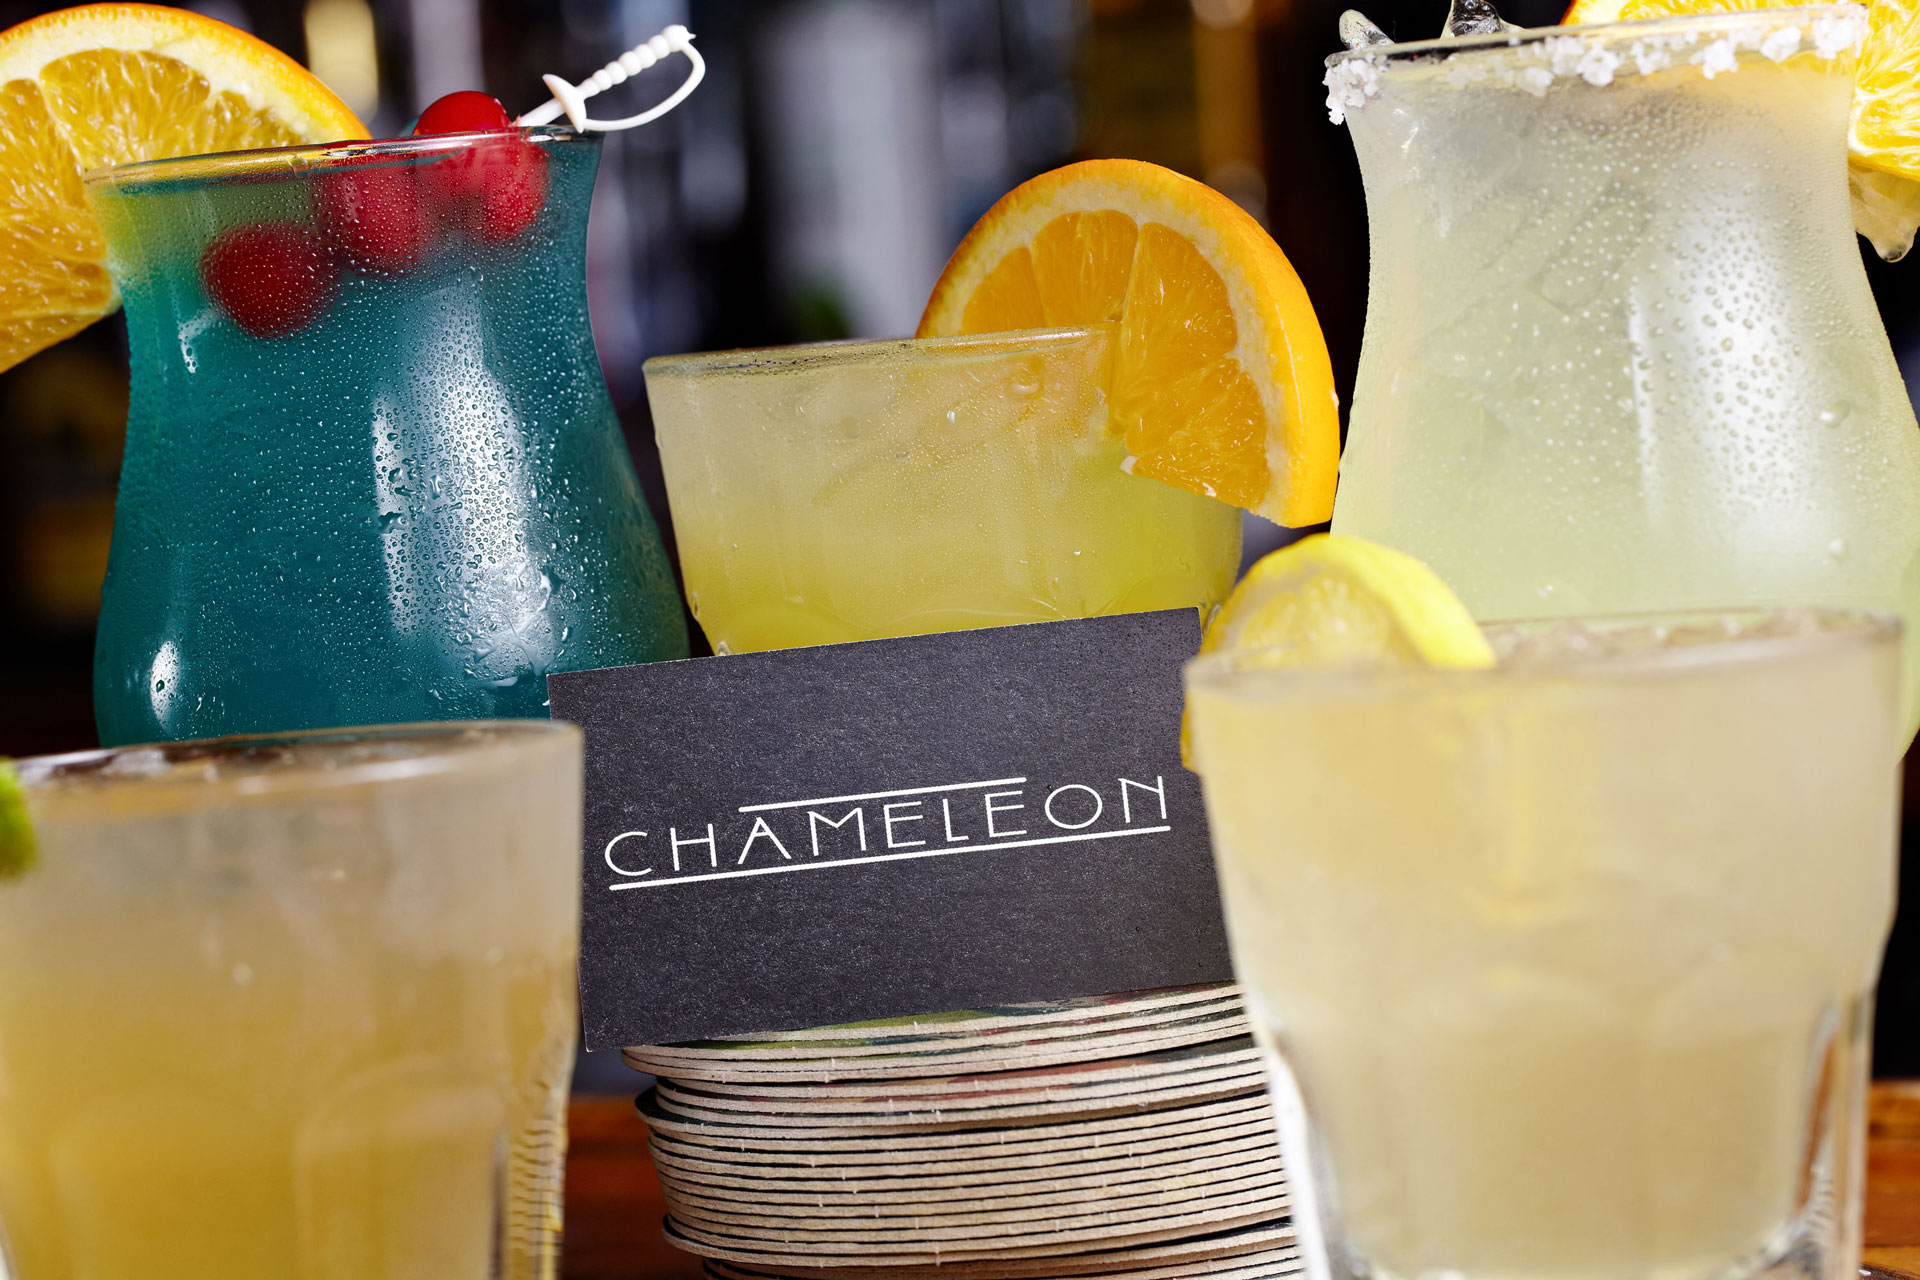 Fresh fruit cocktails and stiff drinks alike, we have a great drink selection at Chameleon in Northside Cincinnati.